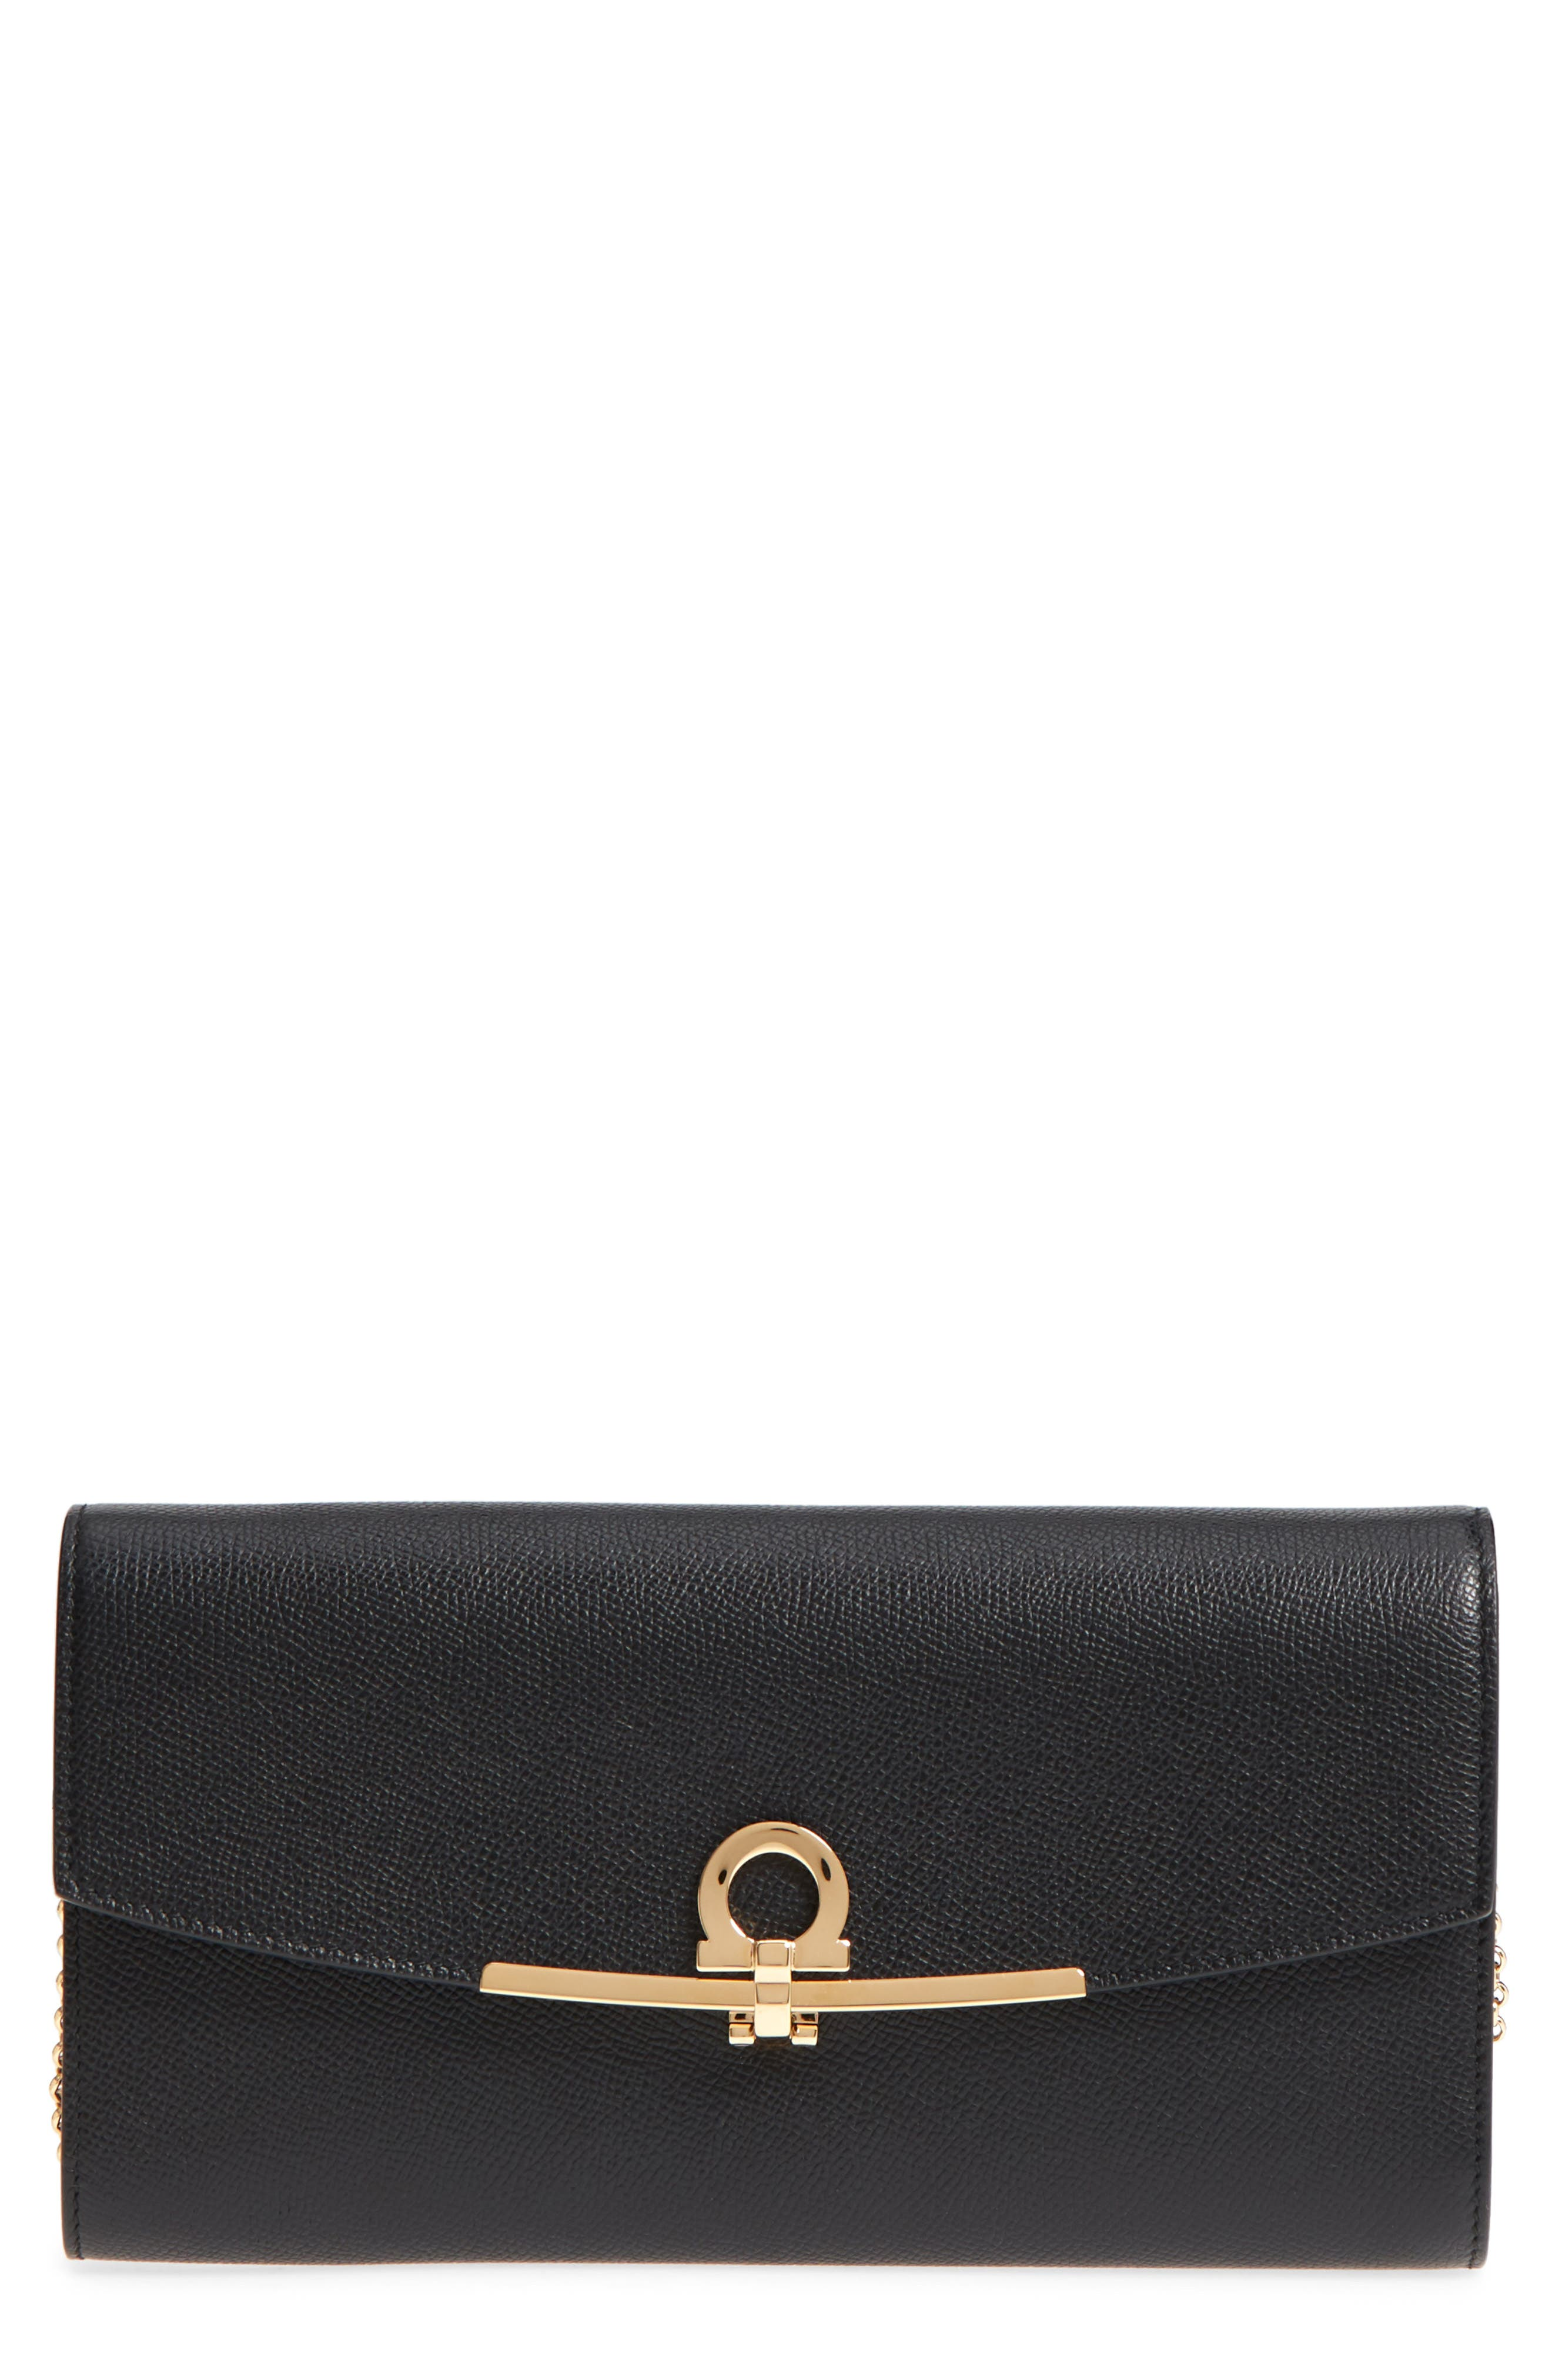 Gancio Calfskin Leather Wallet on a Chain,                         Main,                         color, Nero